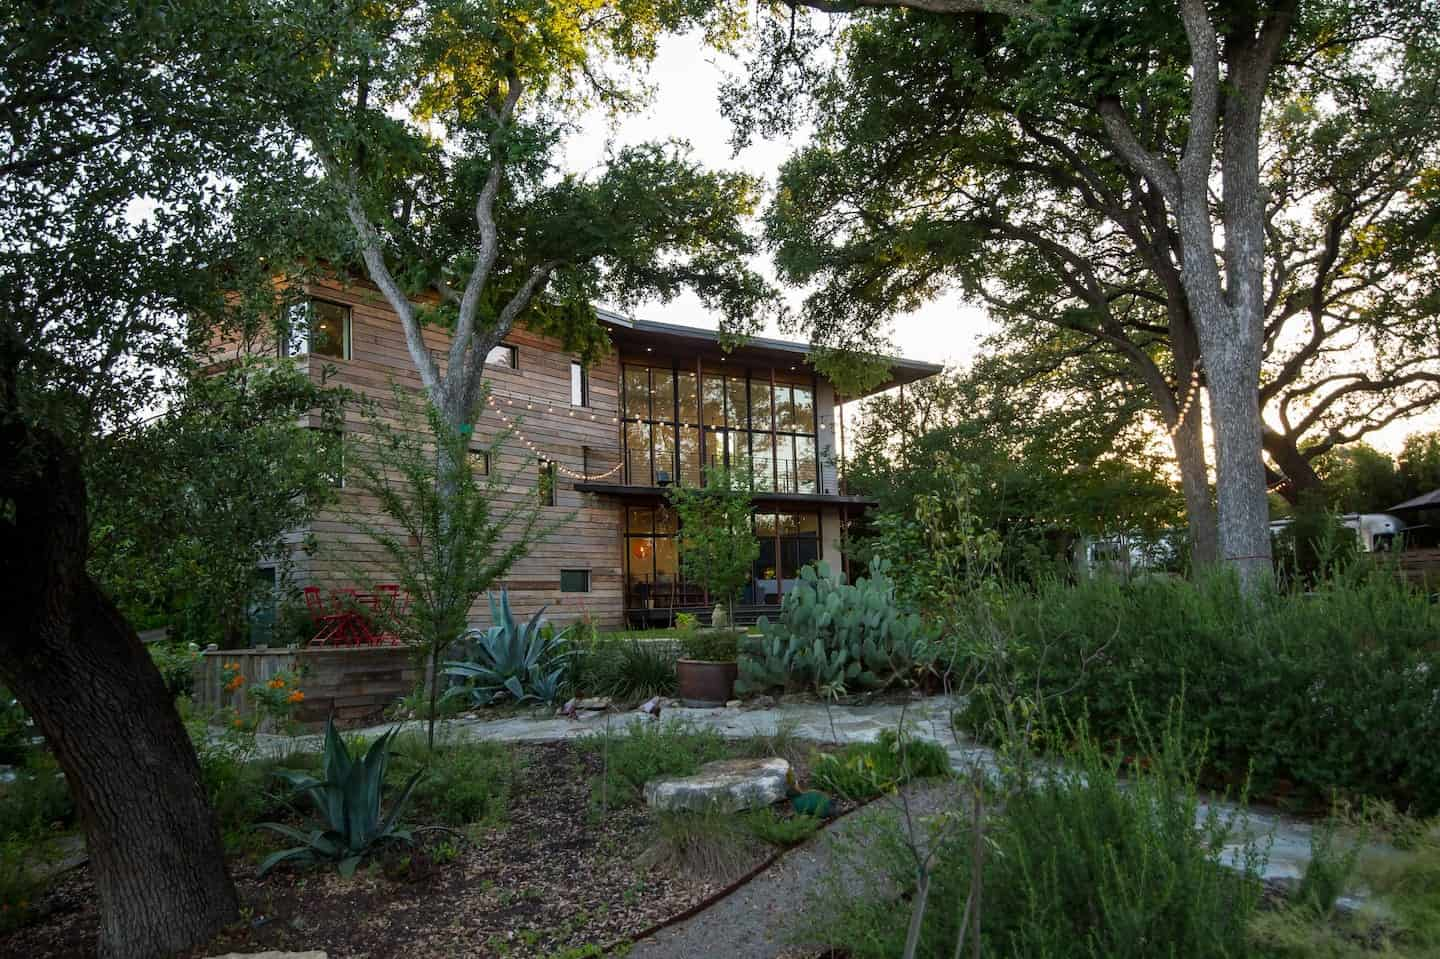 Image of Airbnb rental in Austin, Texas